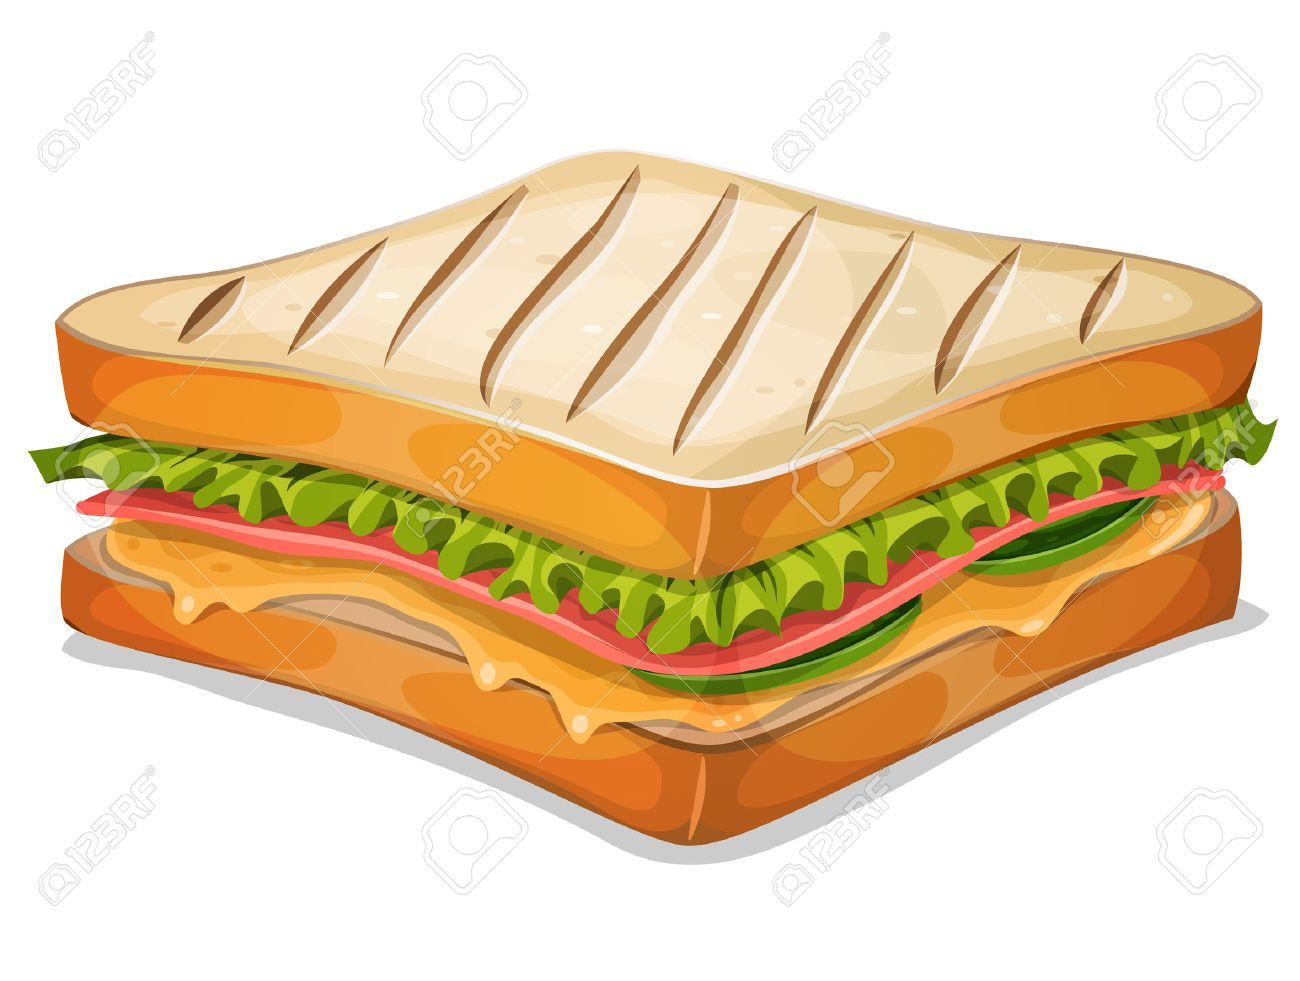 Ham And Cheese Sandwich Clipart.